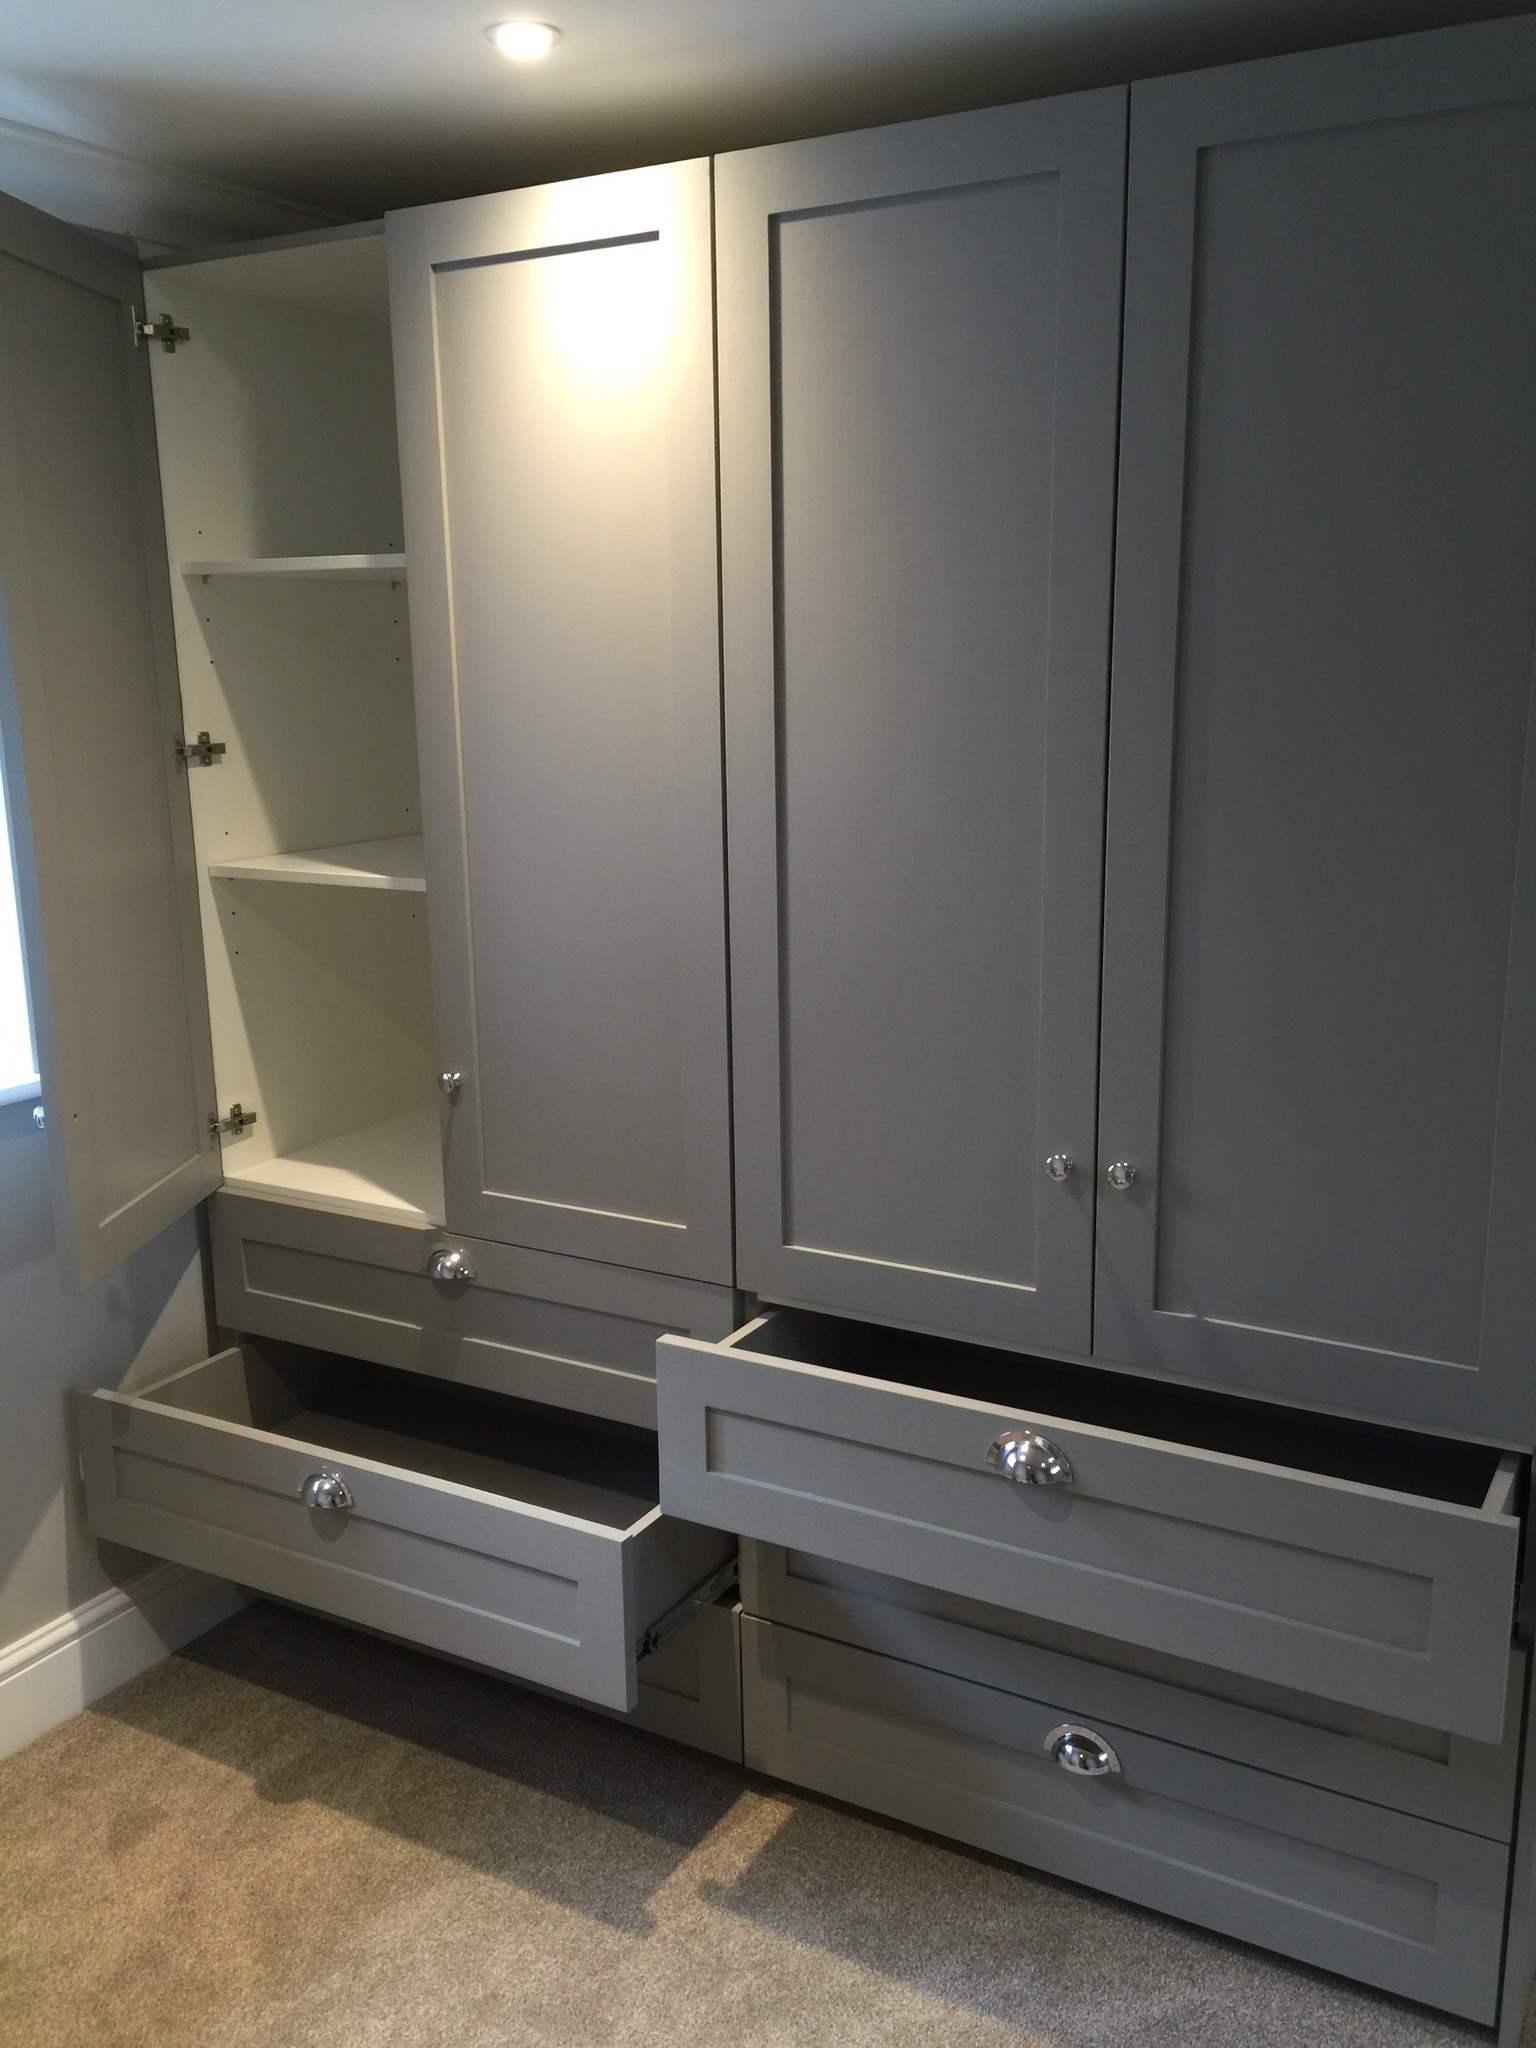 Panel effect wardrobes & drawers